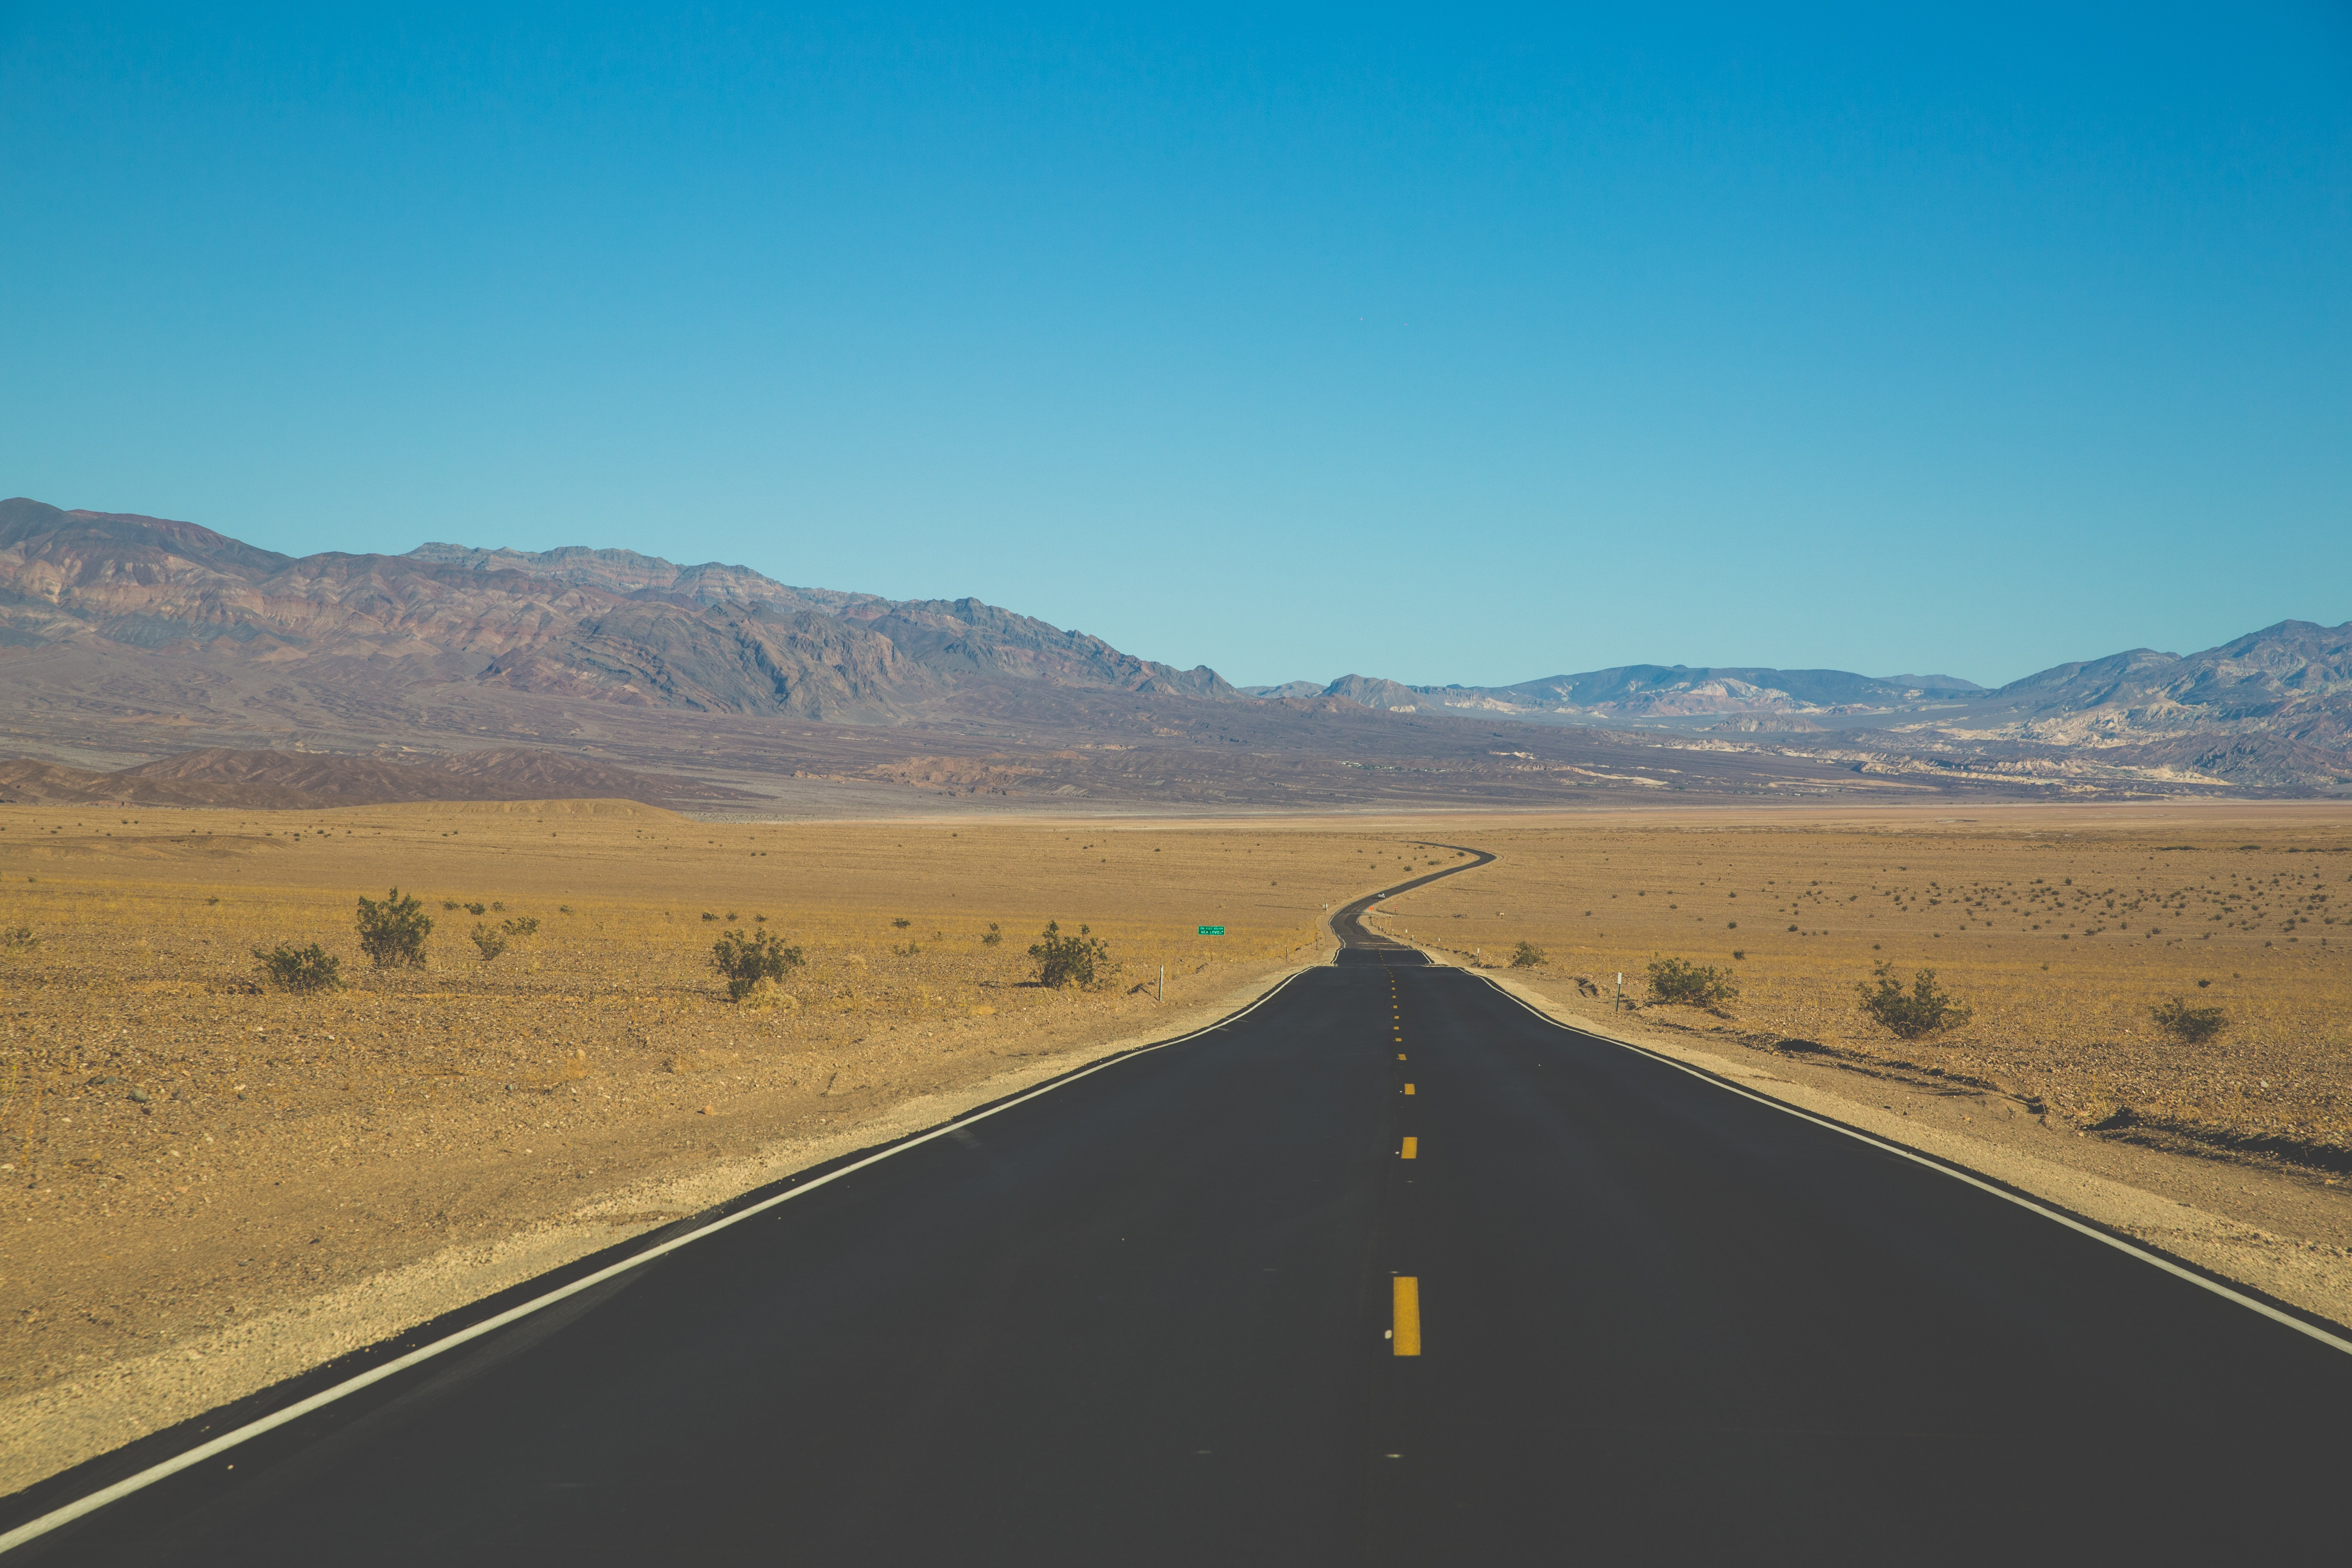 An empty road on arid flat terrain with rocky hills on the horizon